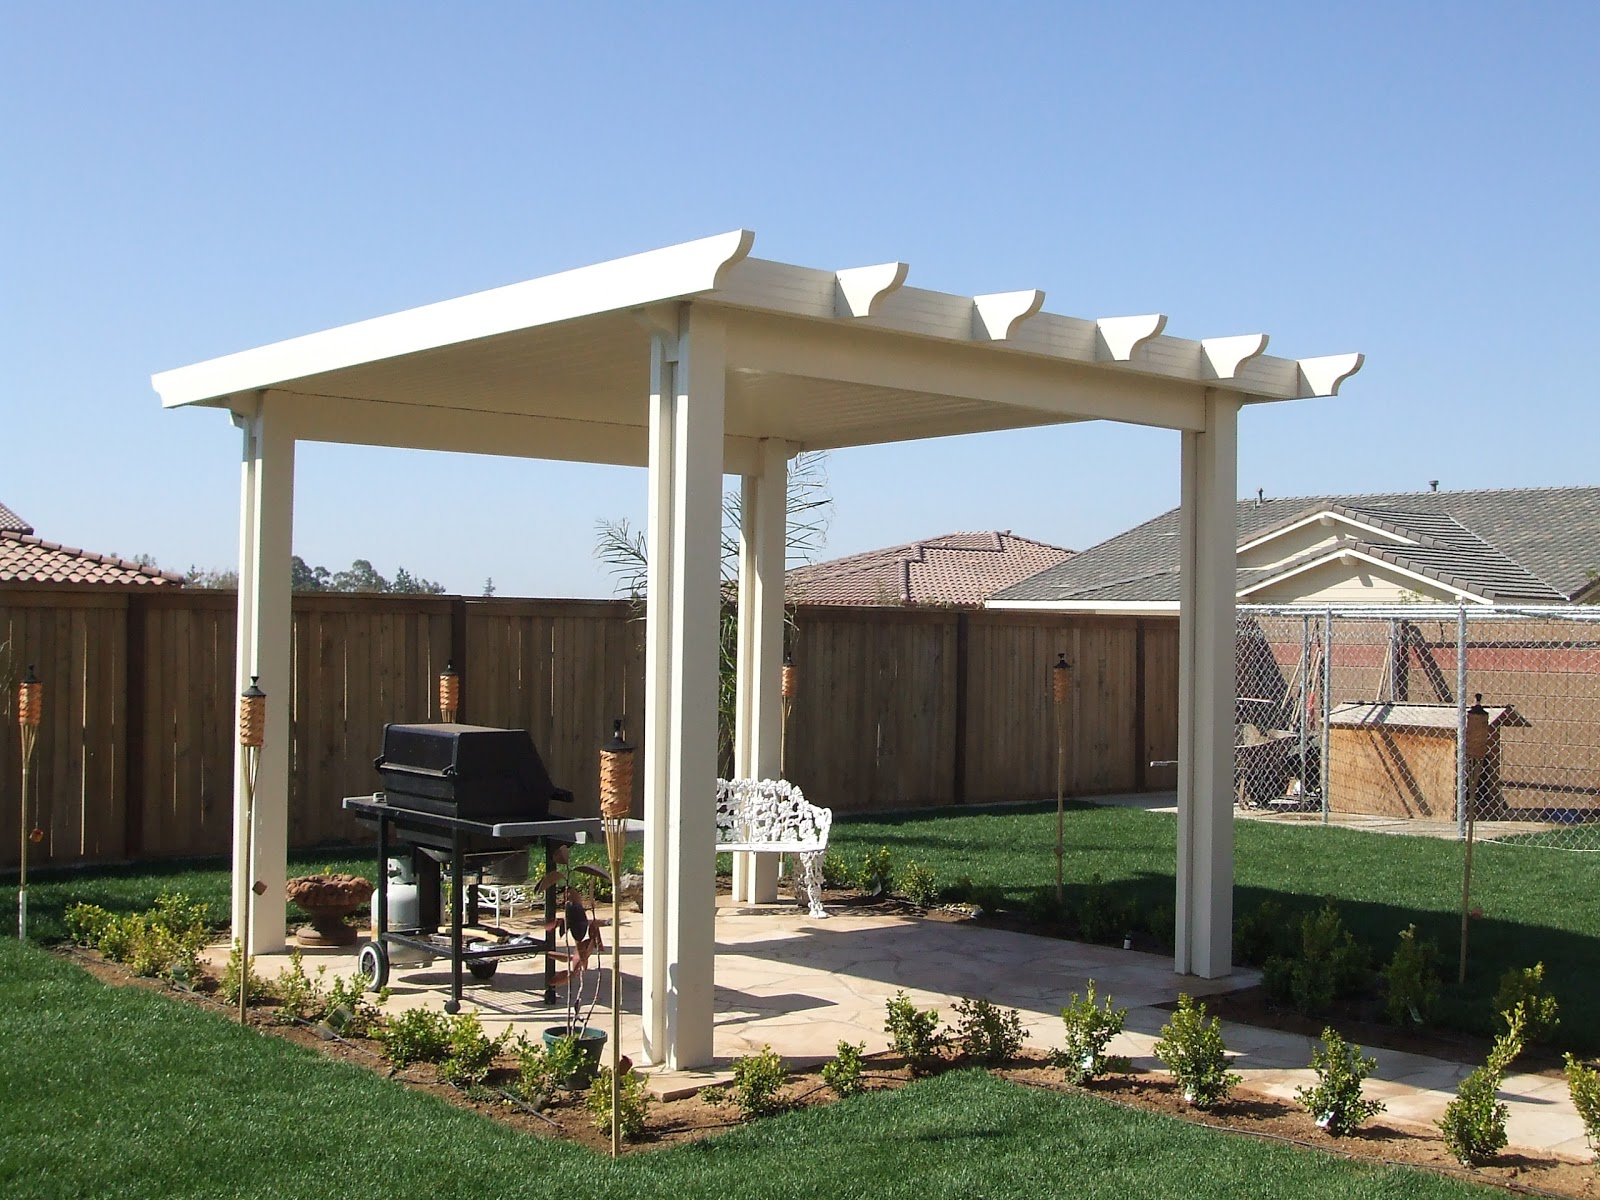 West Coast Siding Alumawood Patio Covers: Alumawood Patio Covers